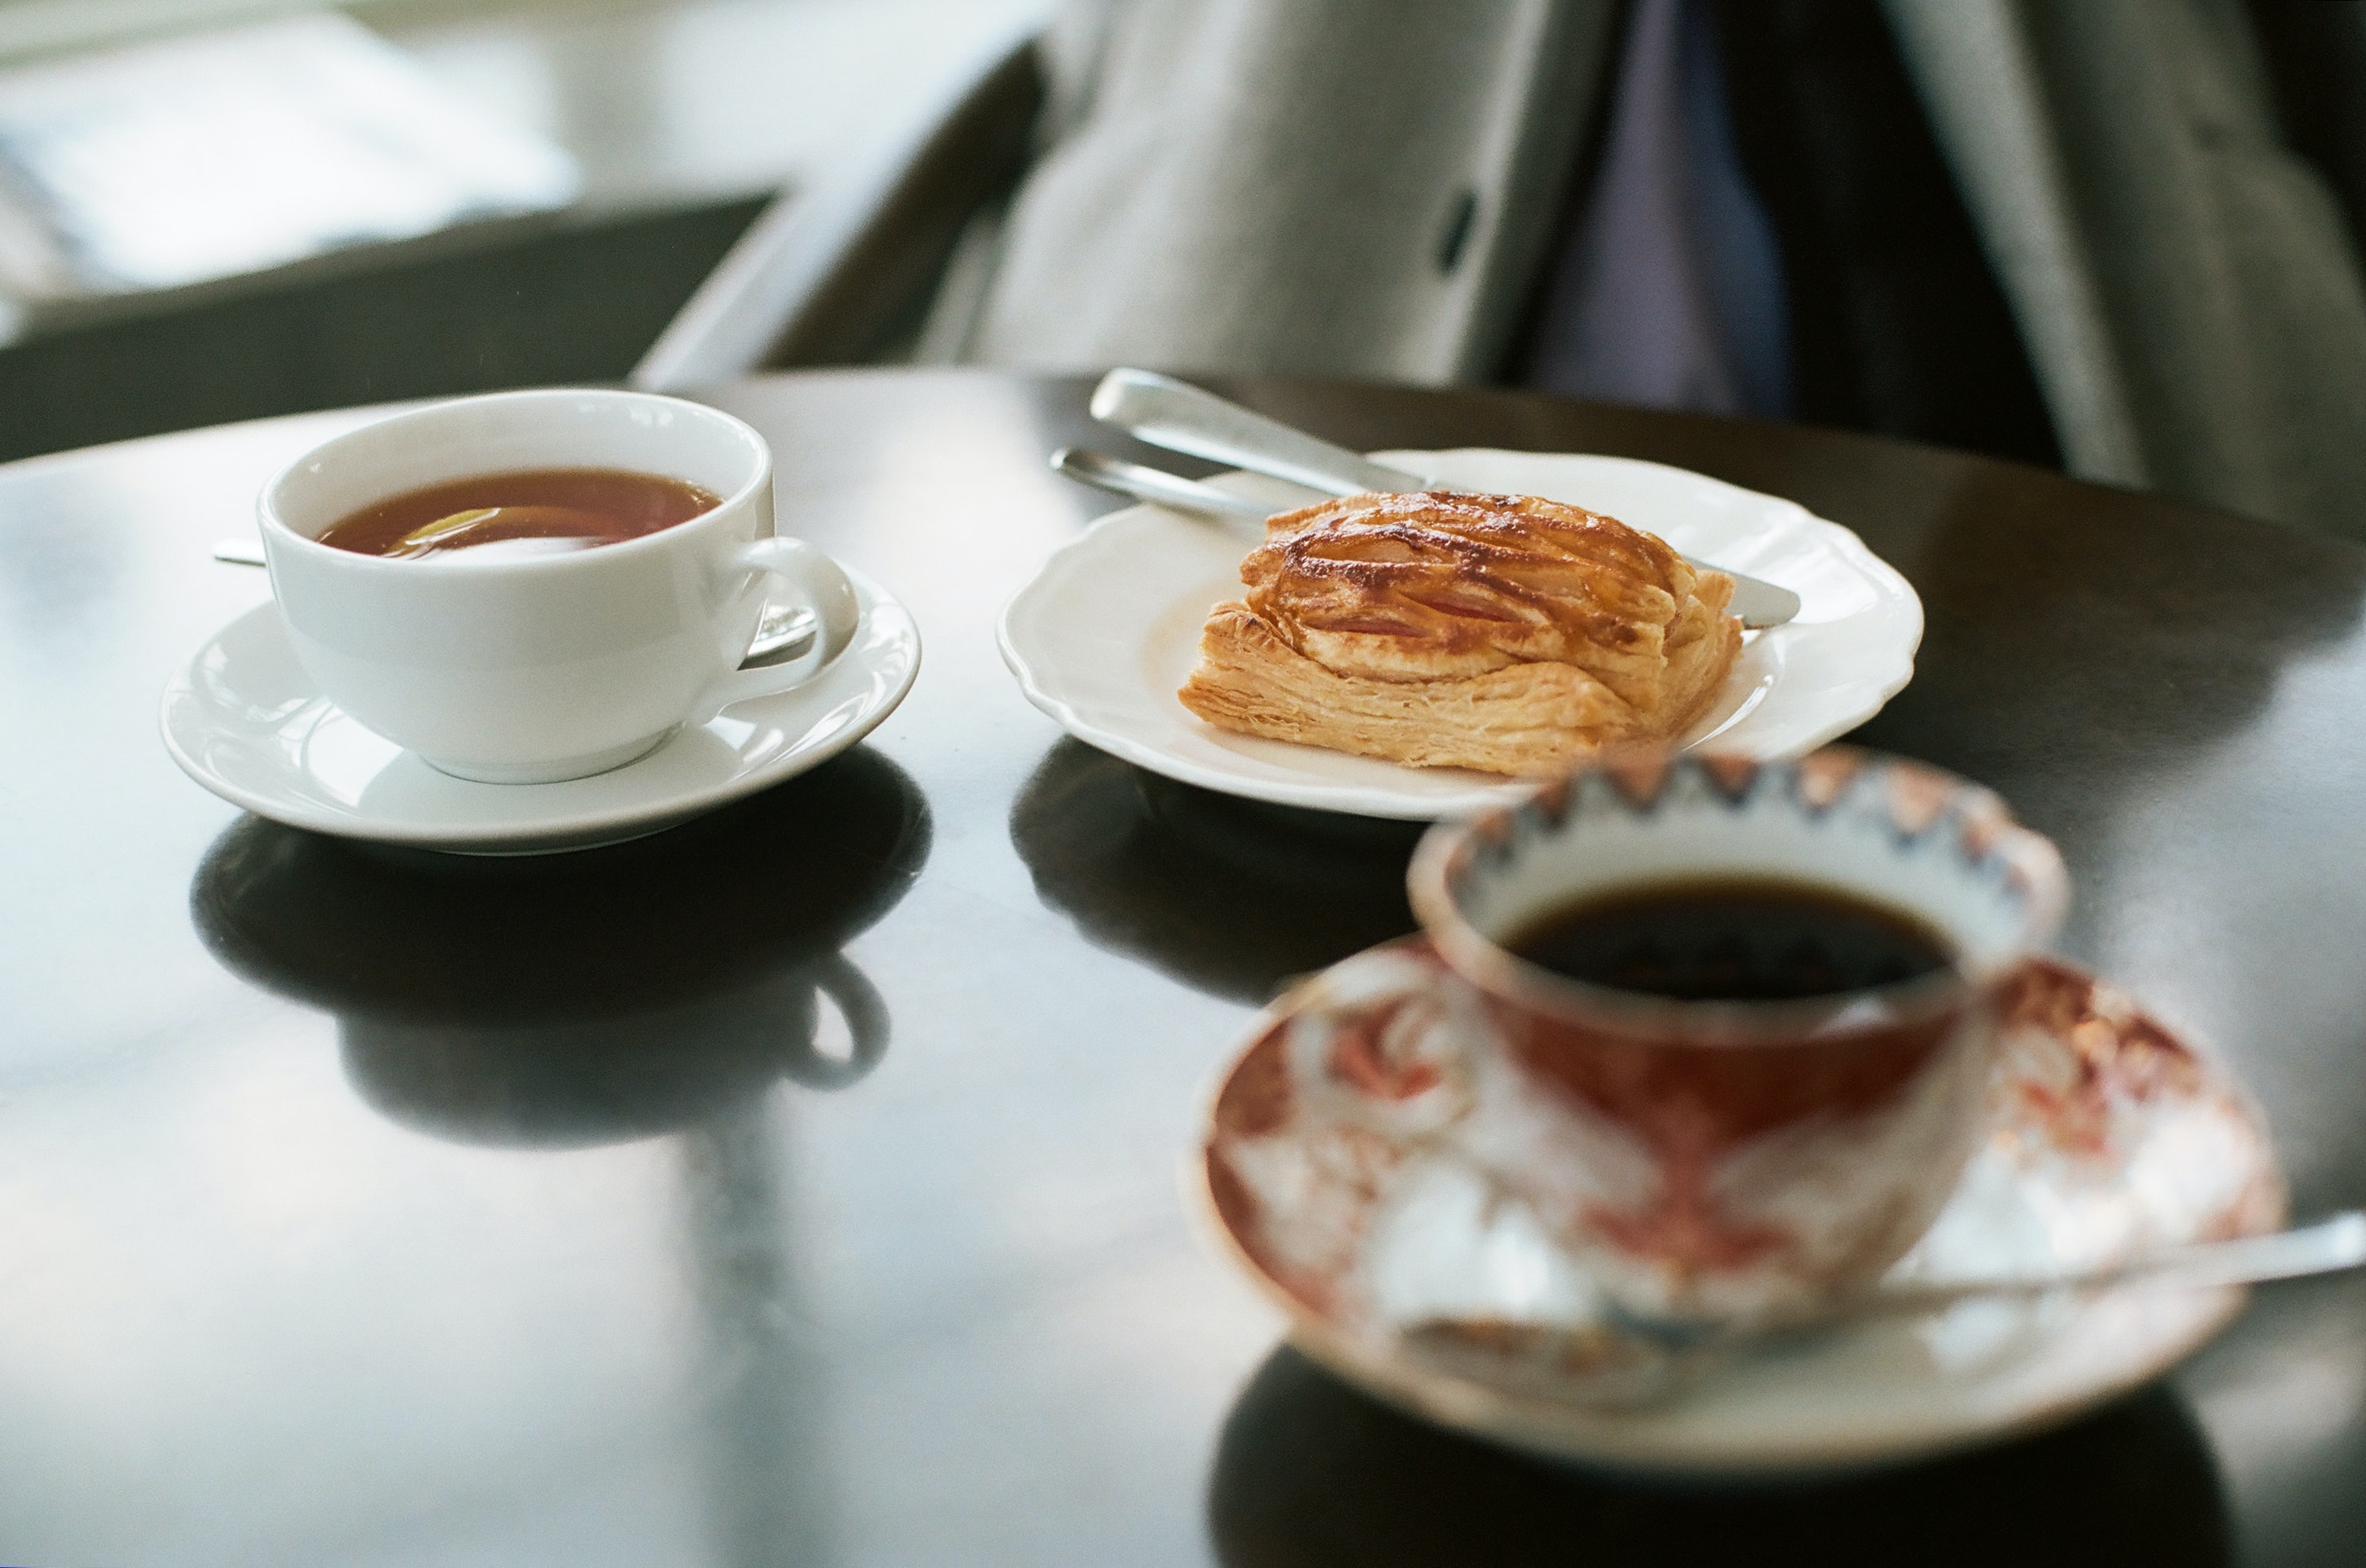 bread on ceramic plate near white ceramic teacup filled with coffee